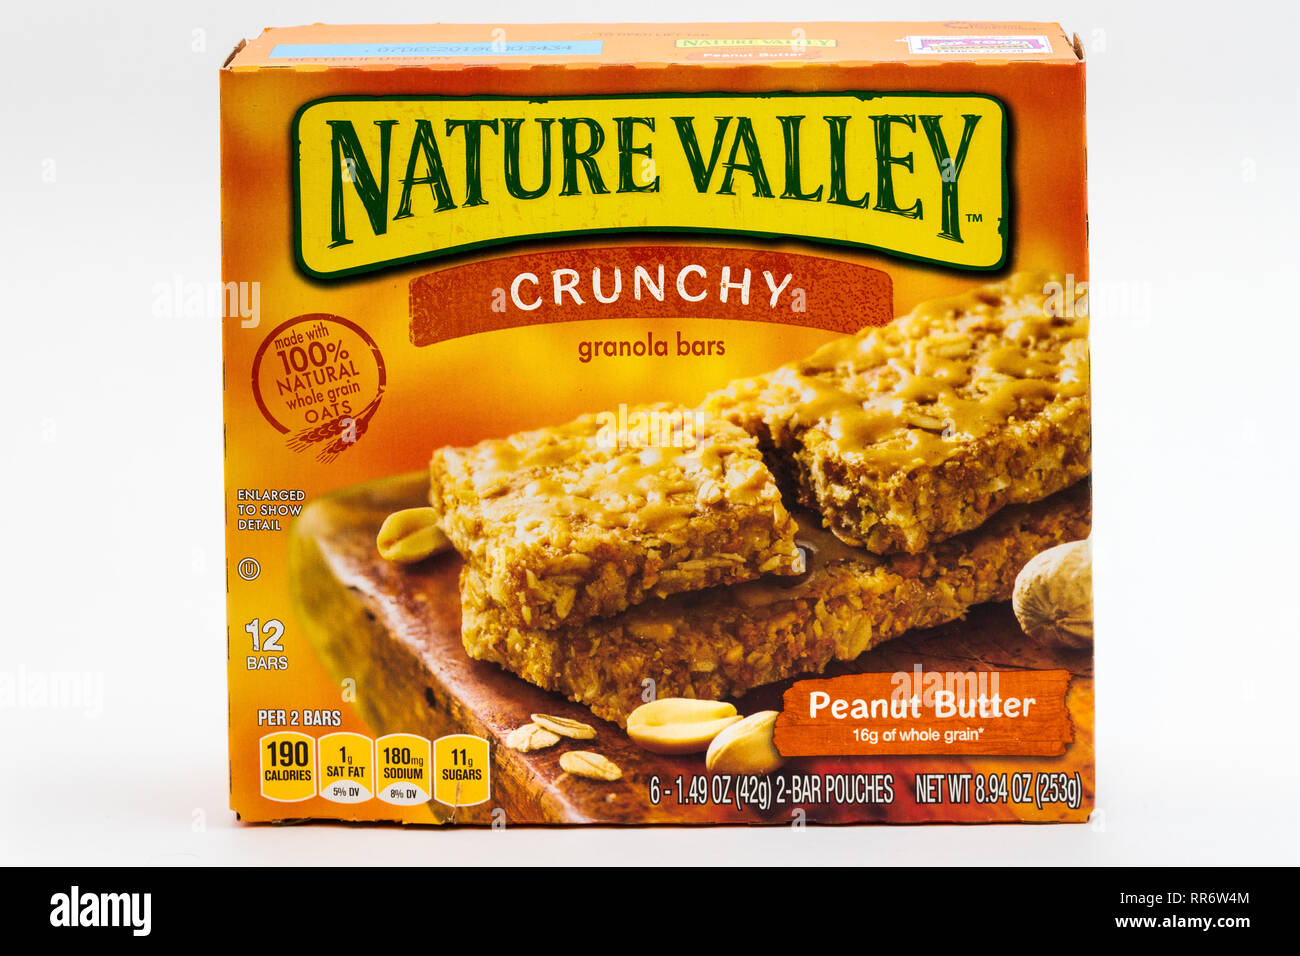 ST. PAUL, MN/USA - FEBRUARY 24, 2019: Nature Valley peanut butter granola bar container and trademark logo. Nature Valley is a brand of granola bars b - Stock Image